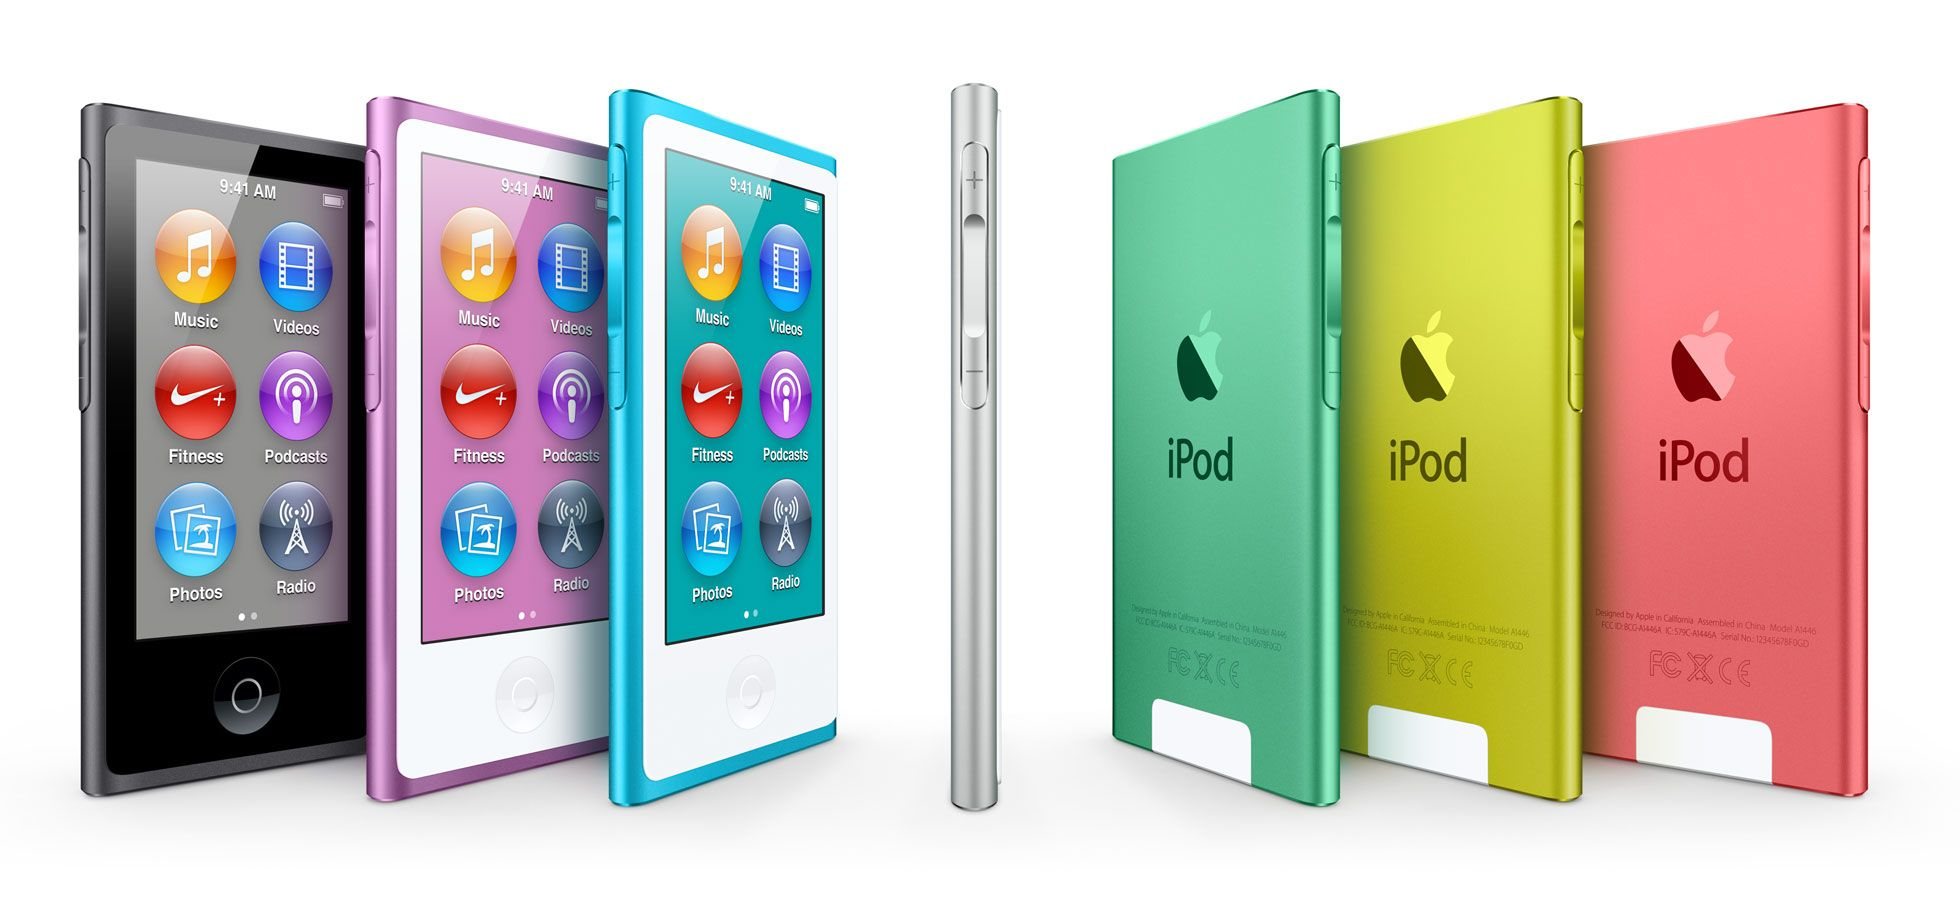 Apple Ipod Nano With Multi Touch I Just Love Blue Or Pink Or Purple Ipod Nano Apple Ipod Ipod